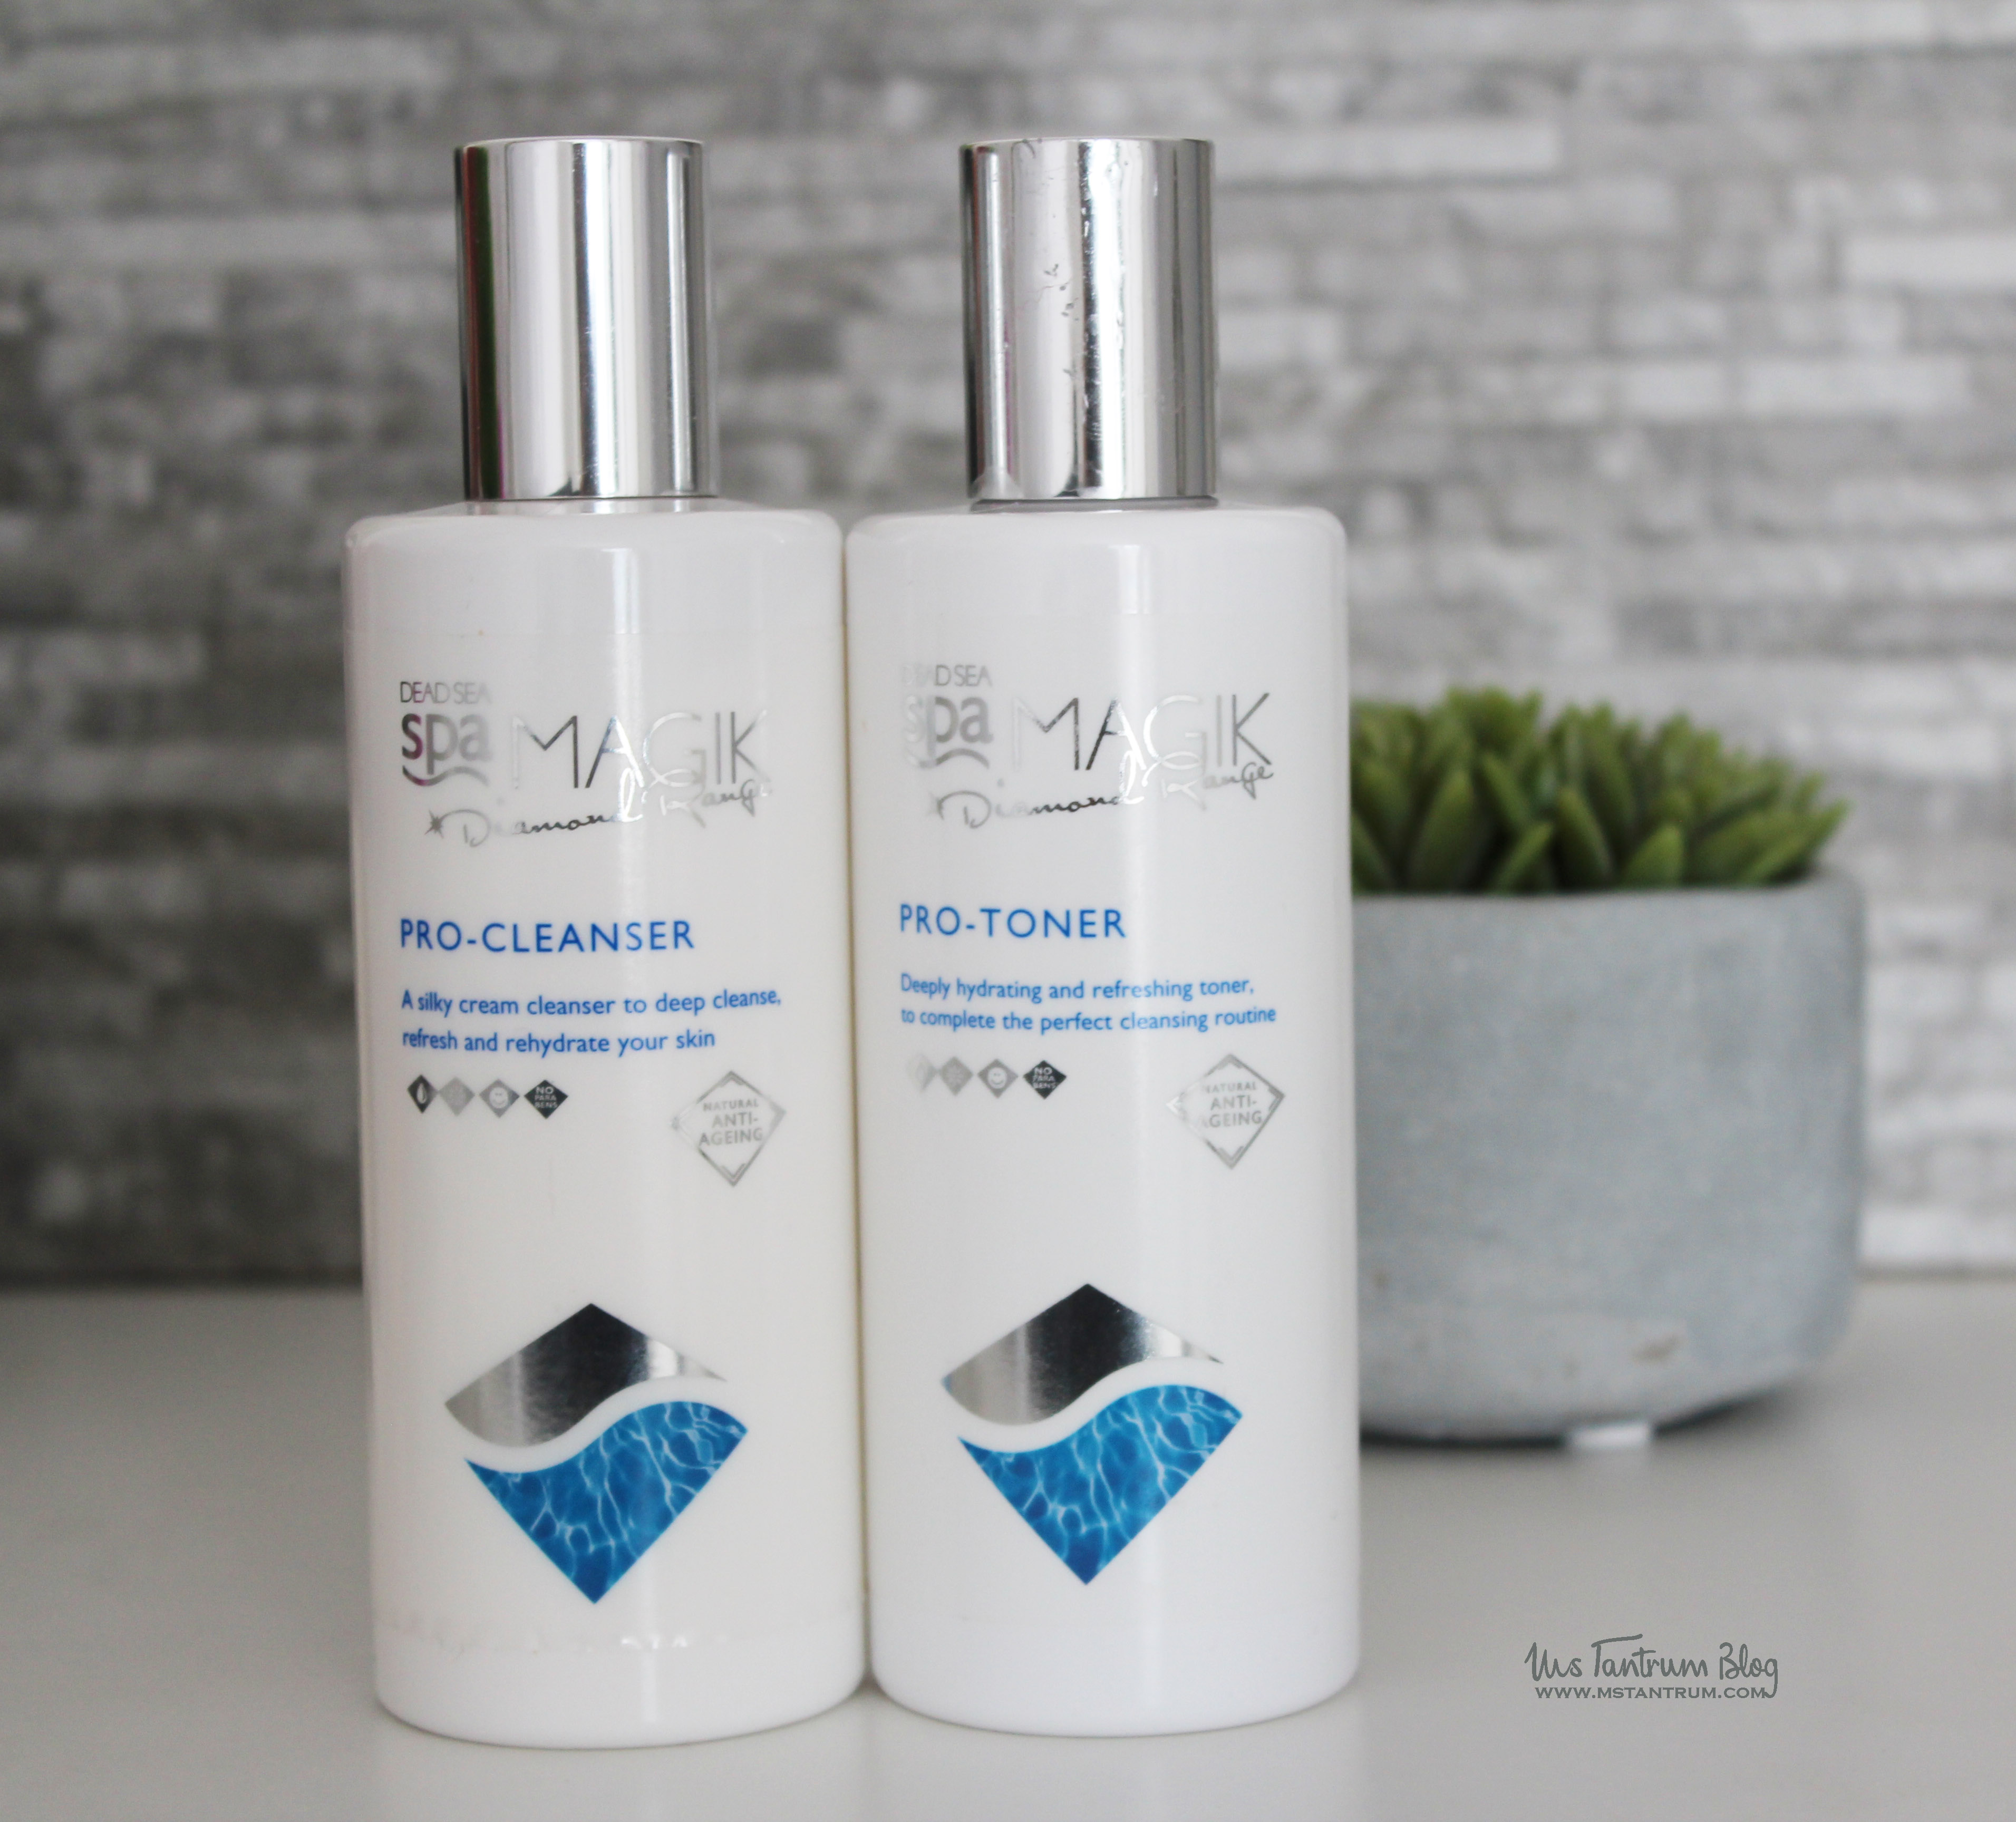 Dead Sea Spa Magik Cleanser and toner duo from Beauty Expert Natural collection kit + Discount code